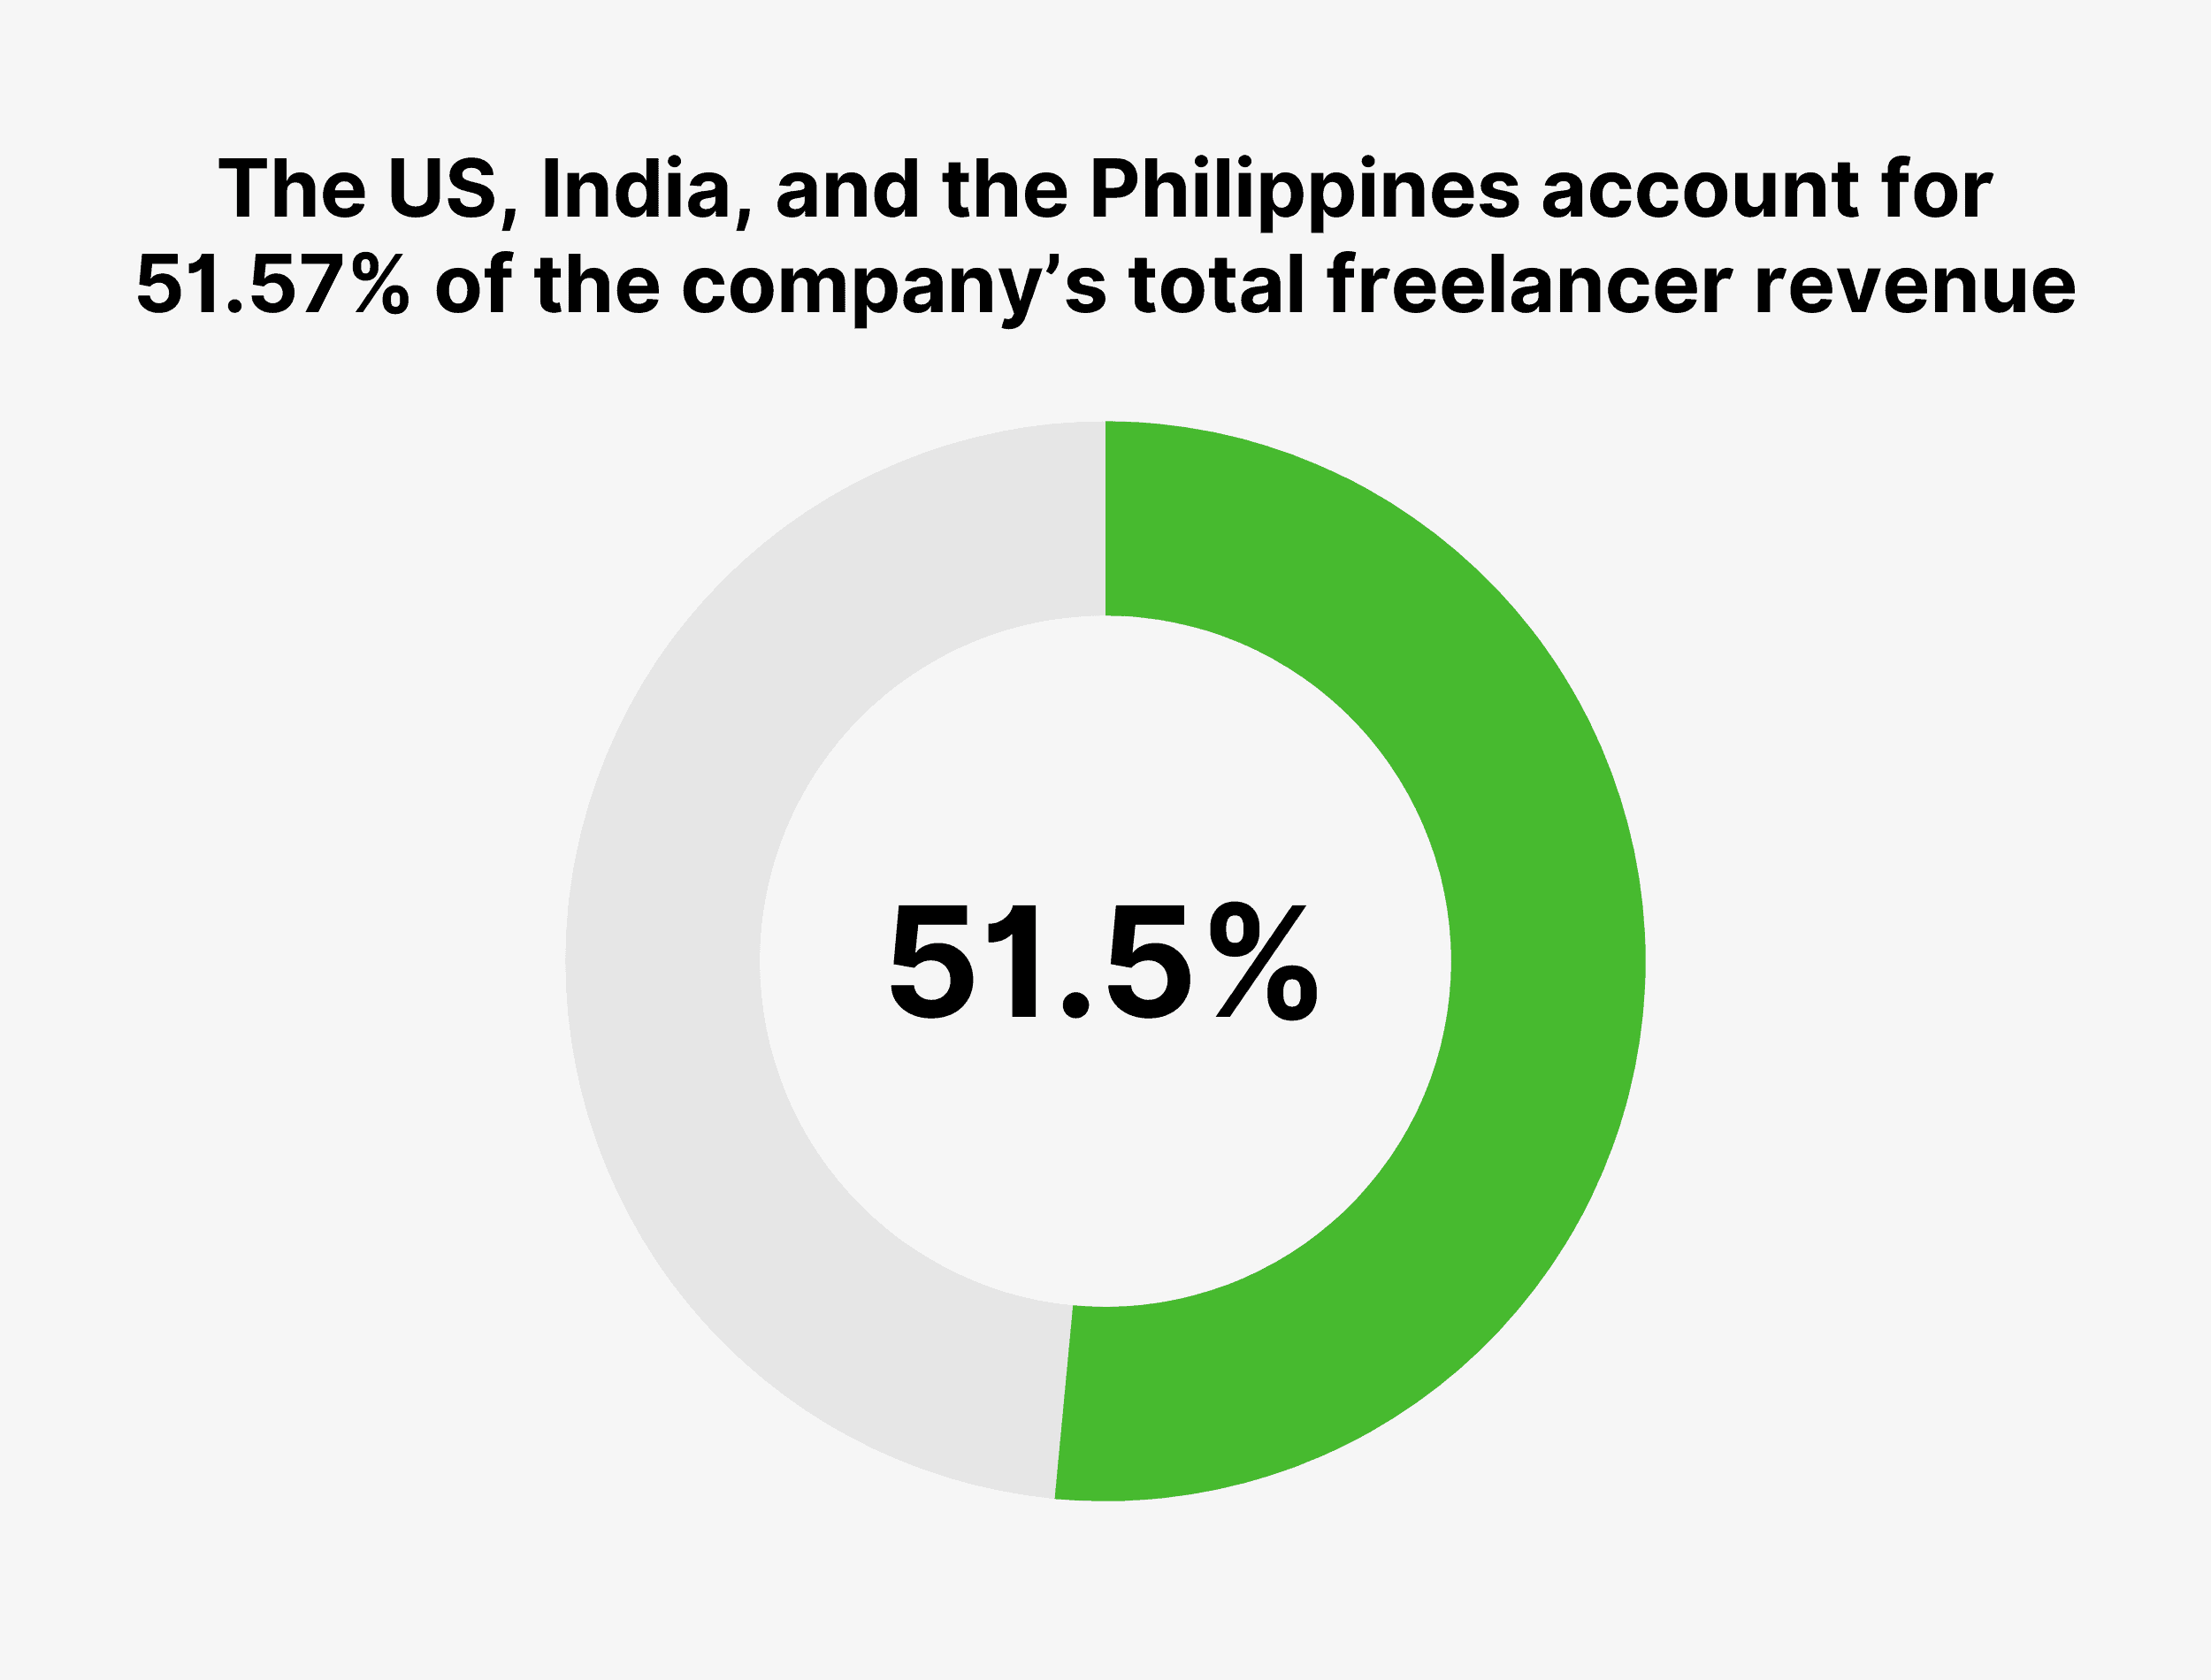 The US, India, and the Philippines account for 51.57% of the company's total freelancer revenue